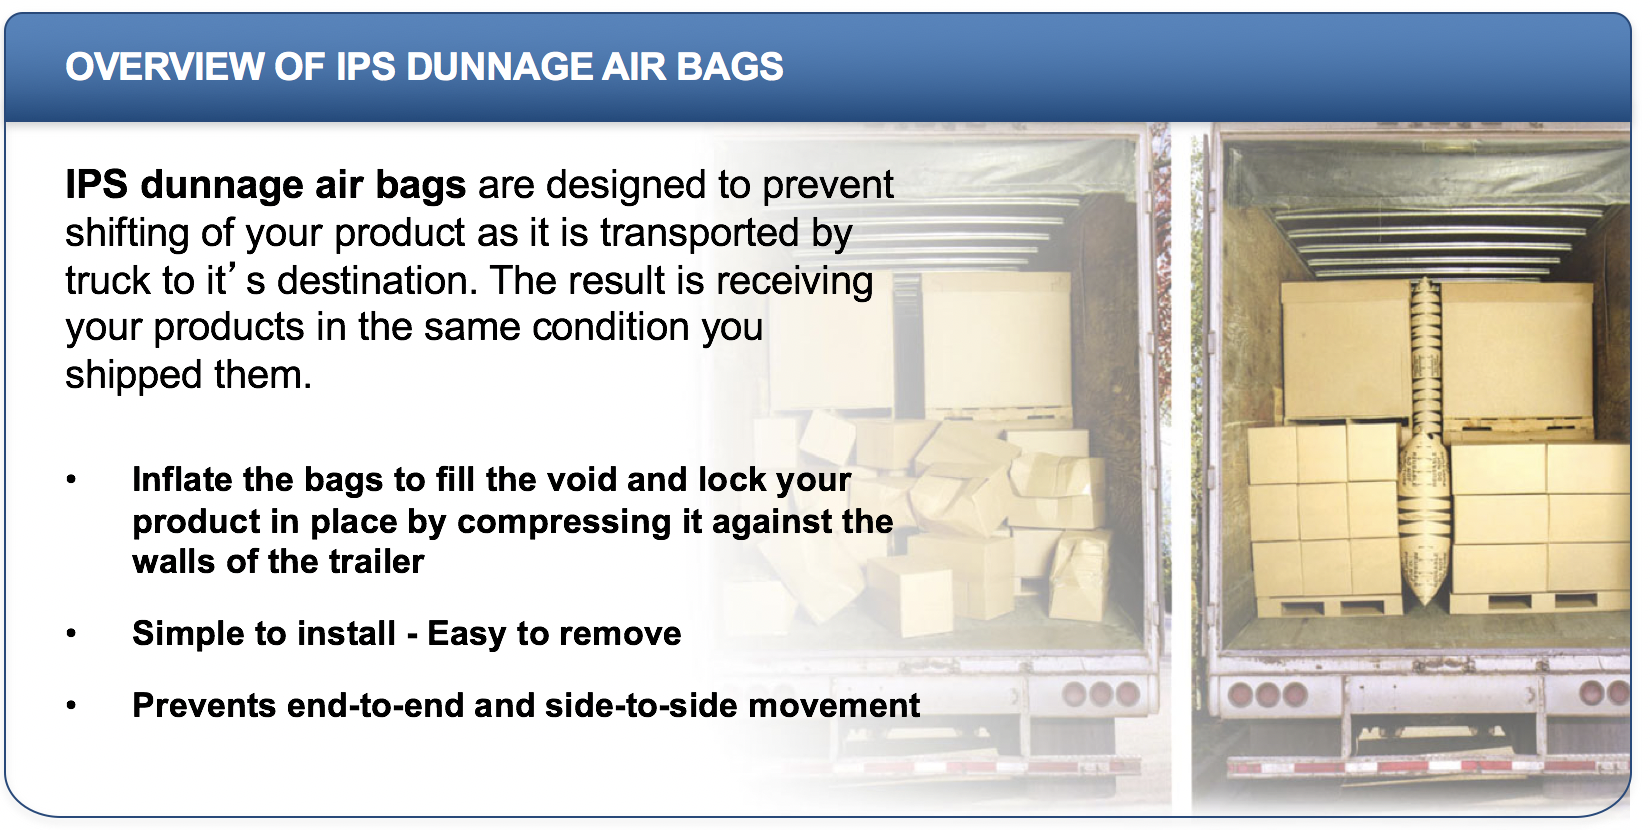 dunnage air bags - IPS Packaging overview